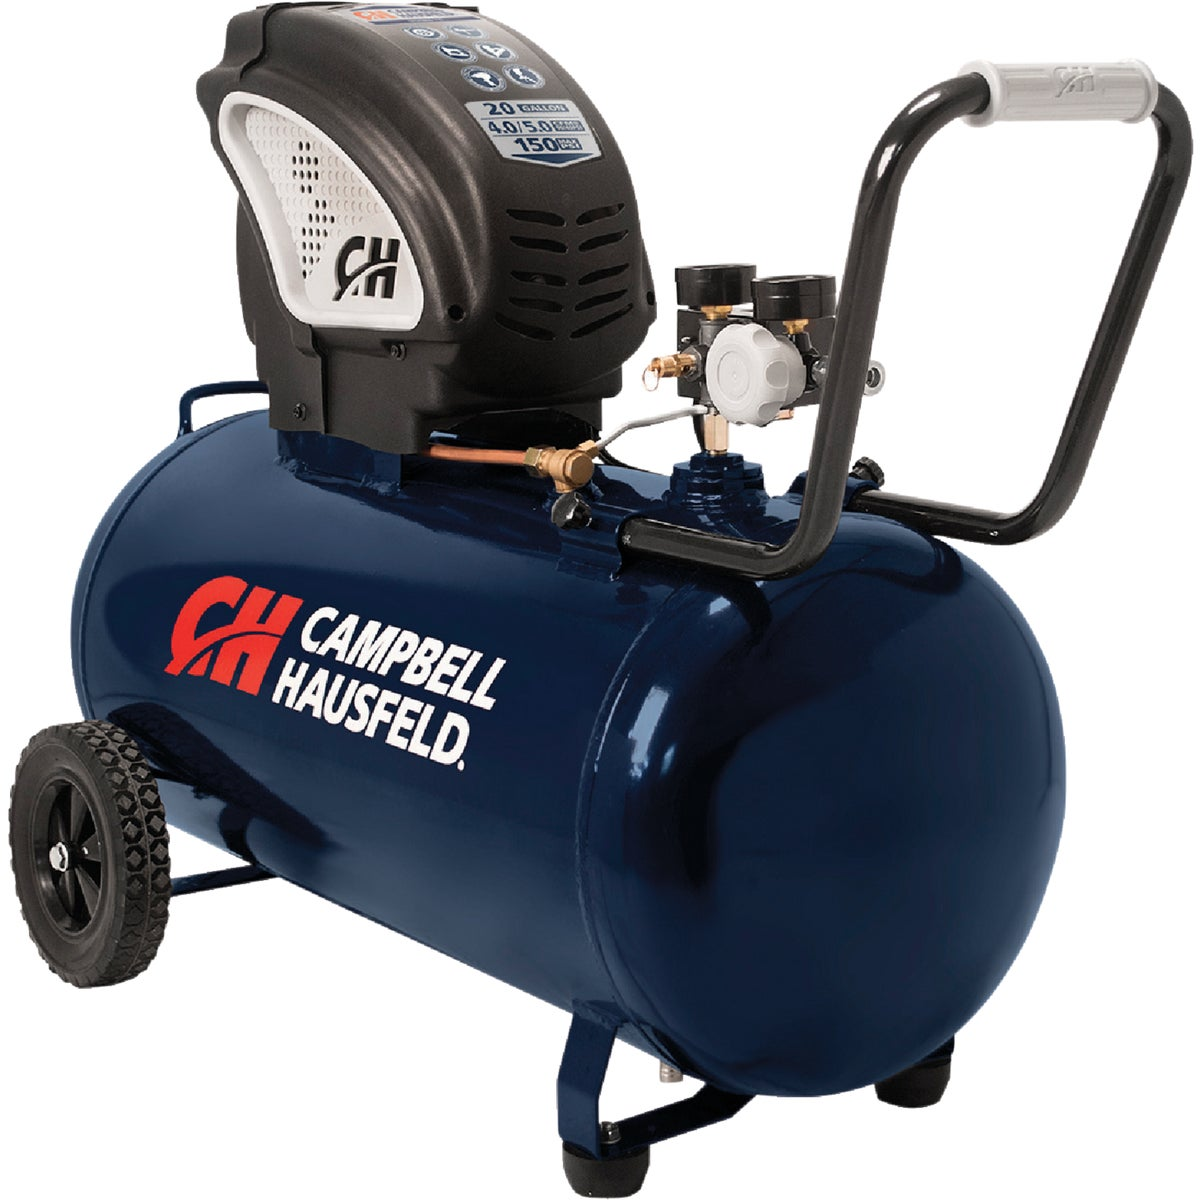 1.7HP 20G AIR COMPRESSOR - WL6502 by Campbell Hausfeld Co